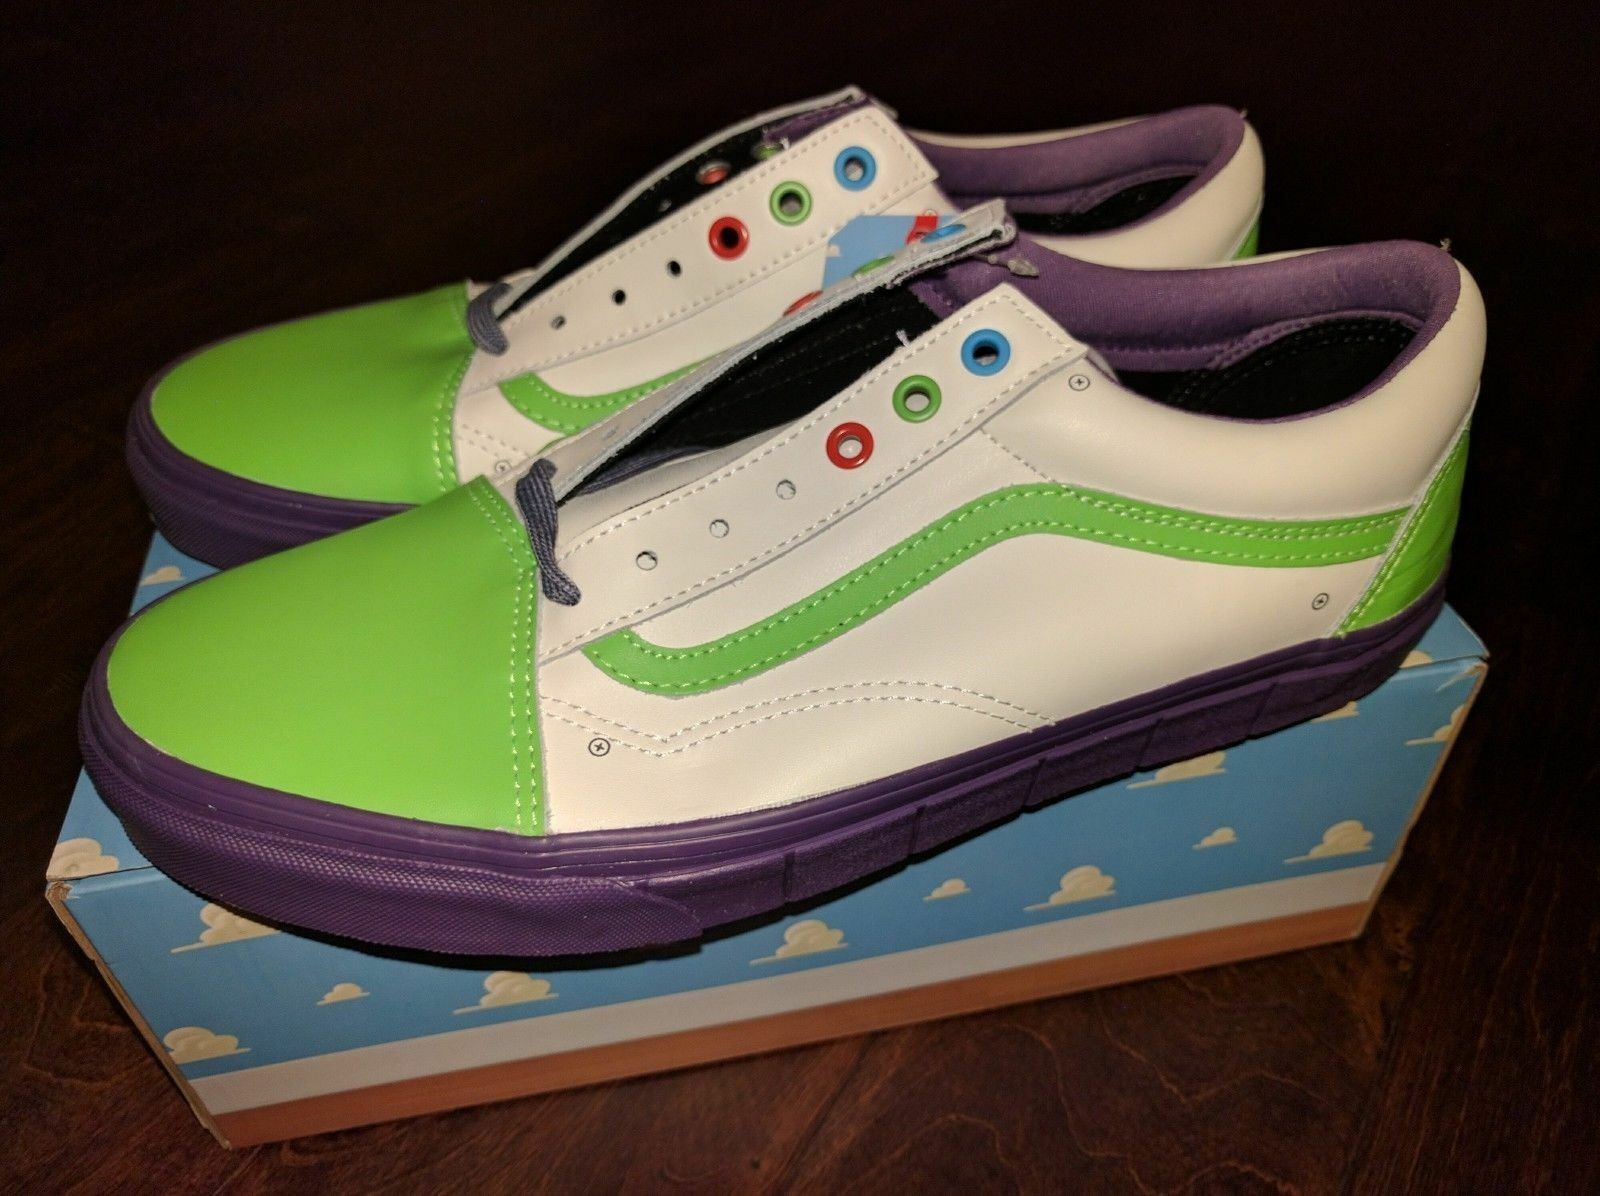 NEW Vans Old Skool Toy Story 4 Buzz Lightyear Shoes White Green Purple RARE